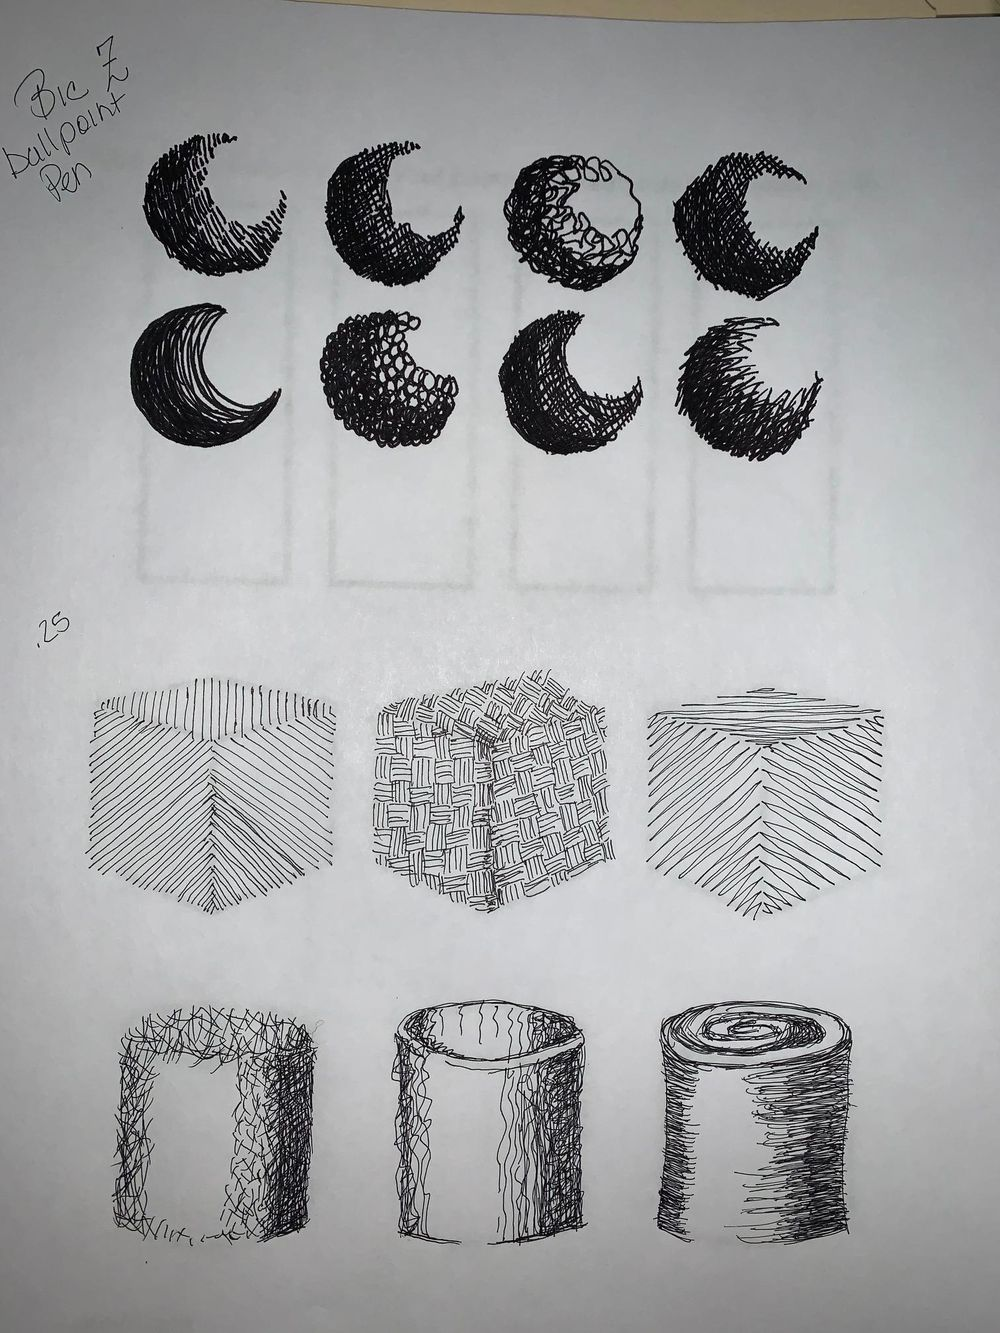 Mark making - image 3 - student project